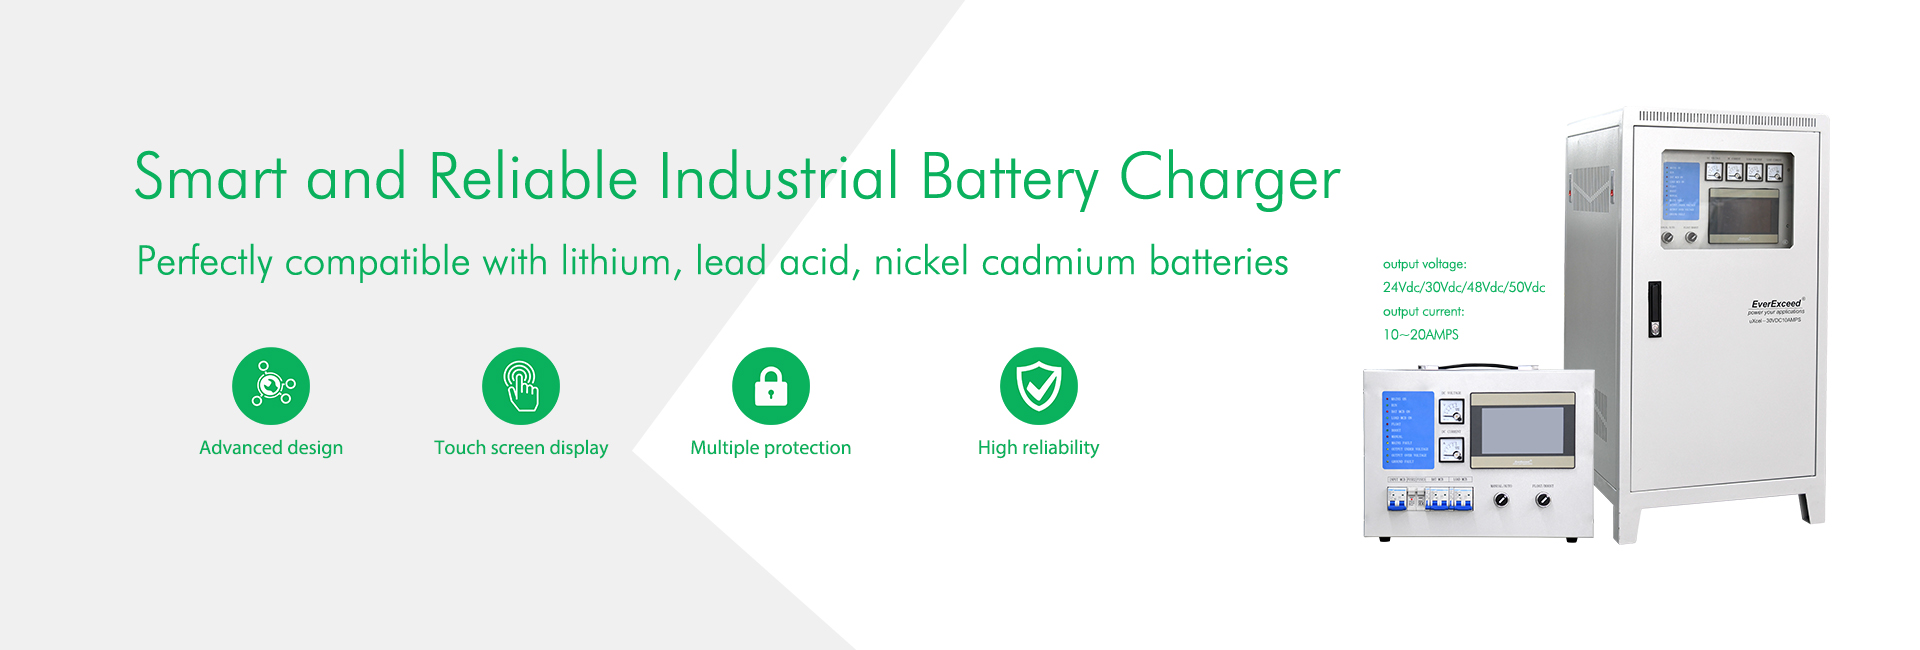 Smart and Reliable Industrial Battery Charger